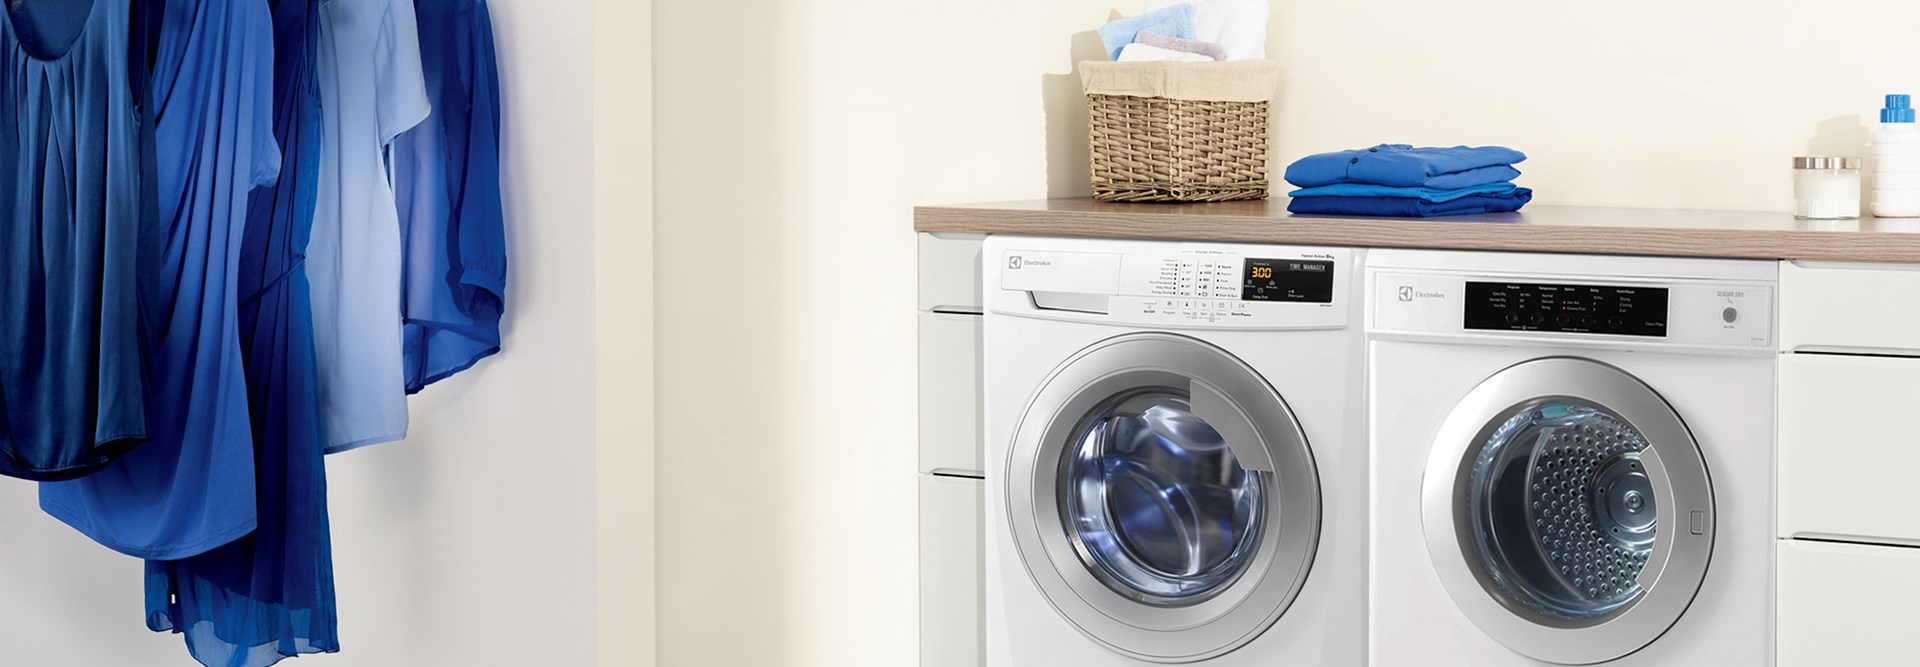 Dryers | Laundry Dryers & Drying Machines